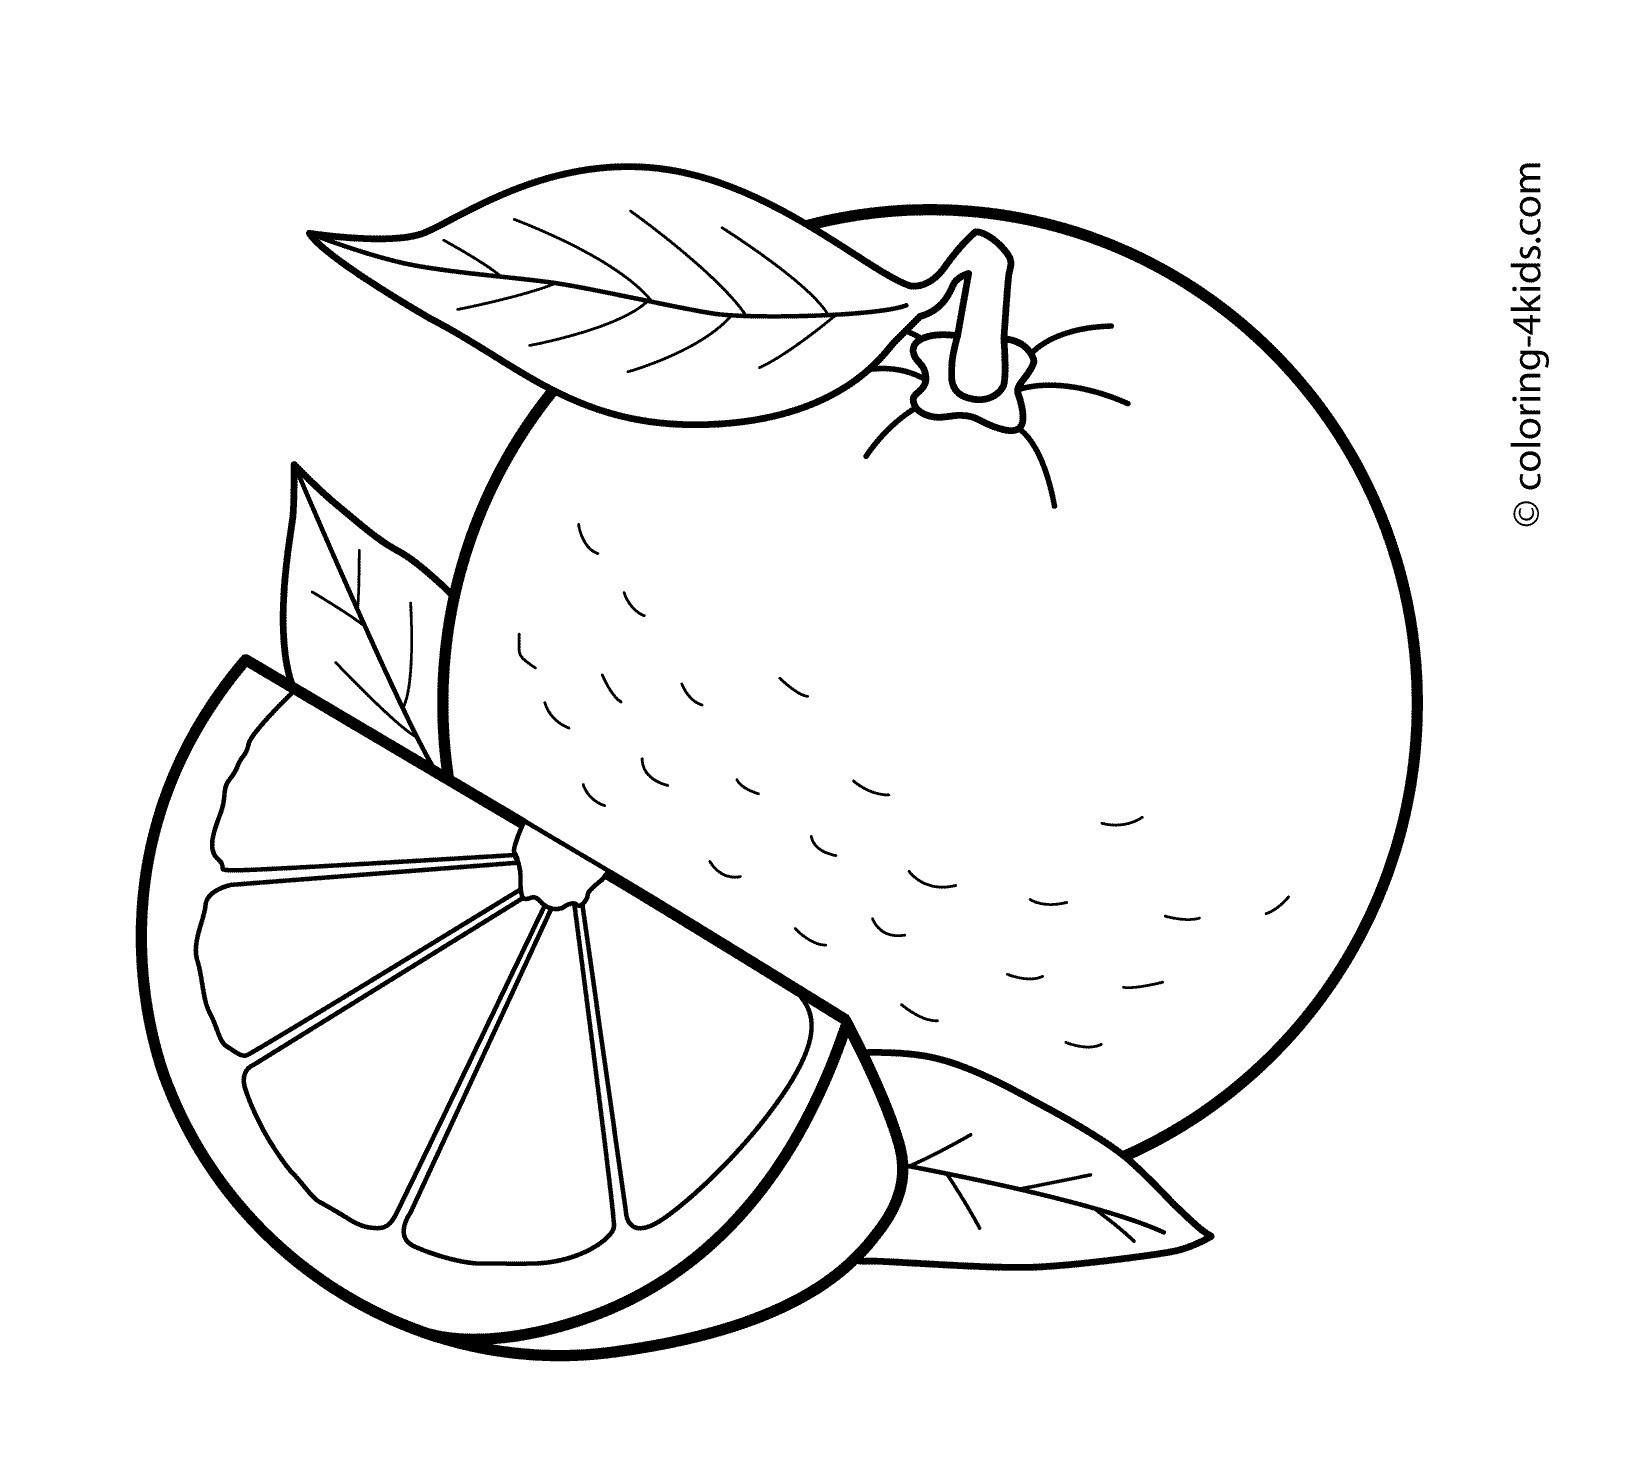 Orange fruit clipart black and white 1 » Clipart Station.